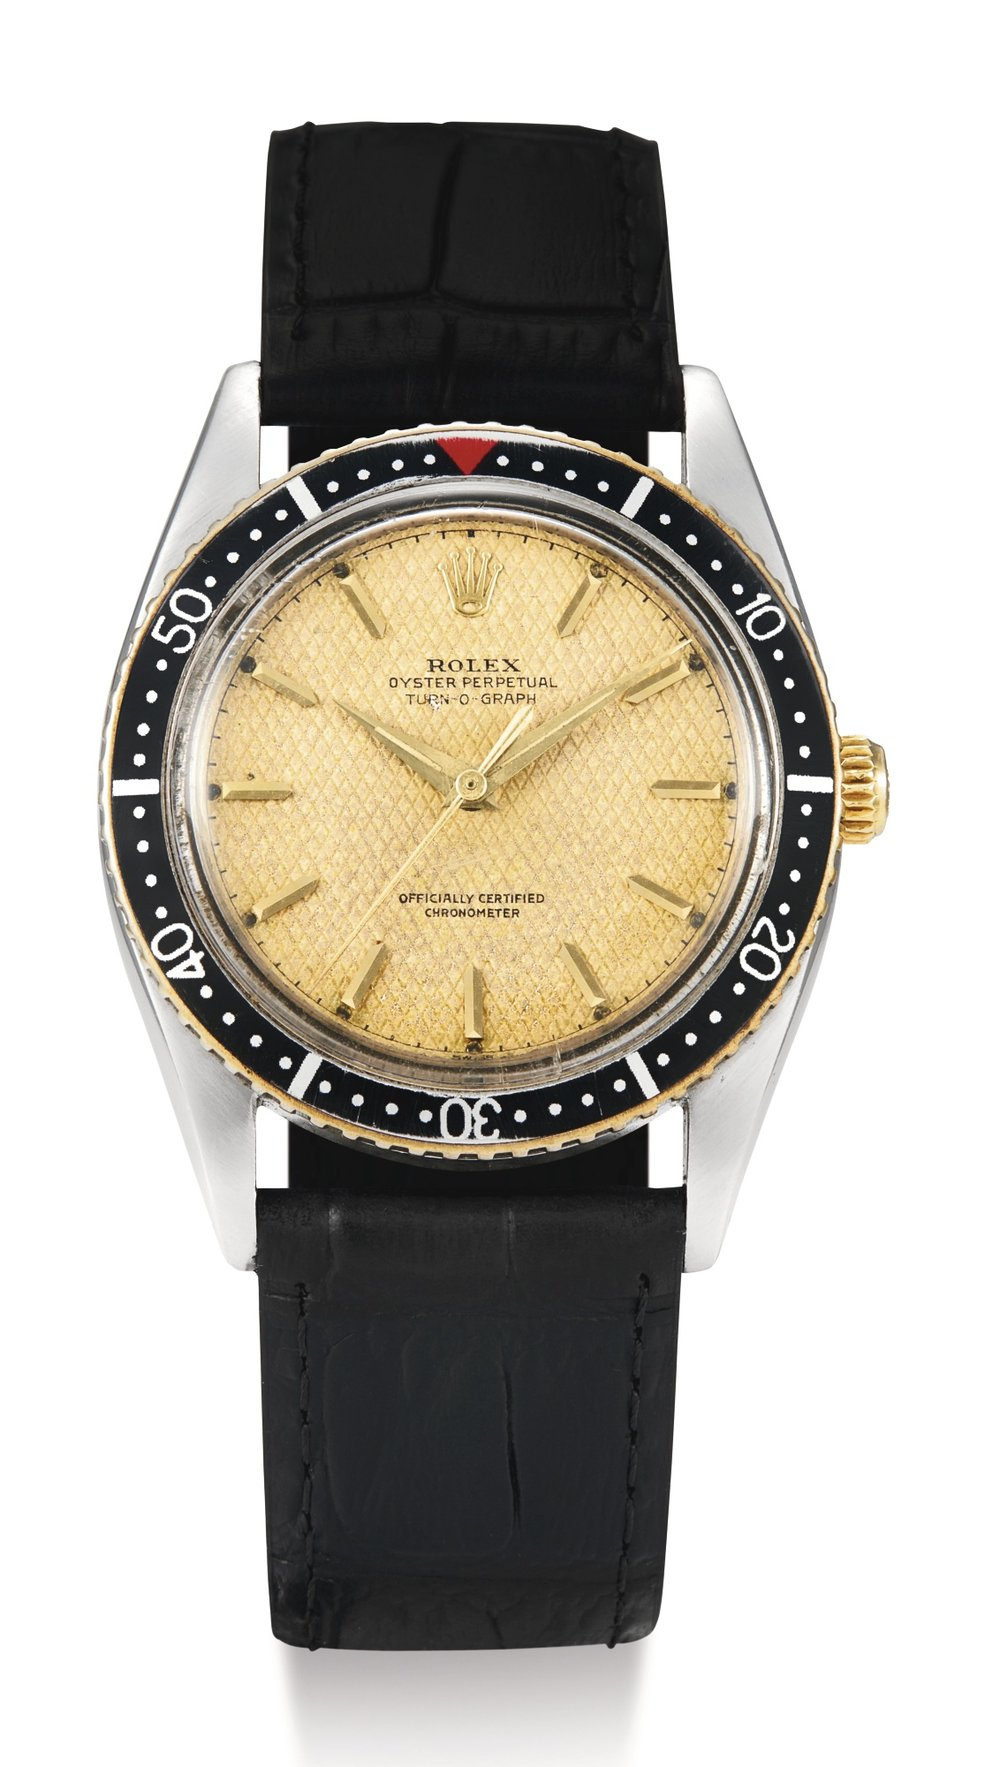 Rolex Turn-o-graph Ref. 6202 with Honeycomb dial. Photo courtesy of Sotheby's.